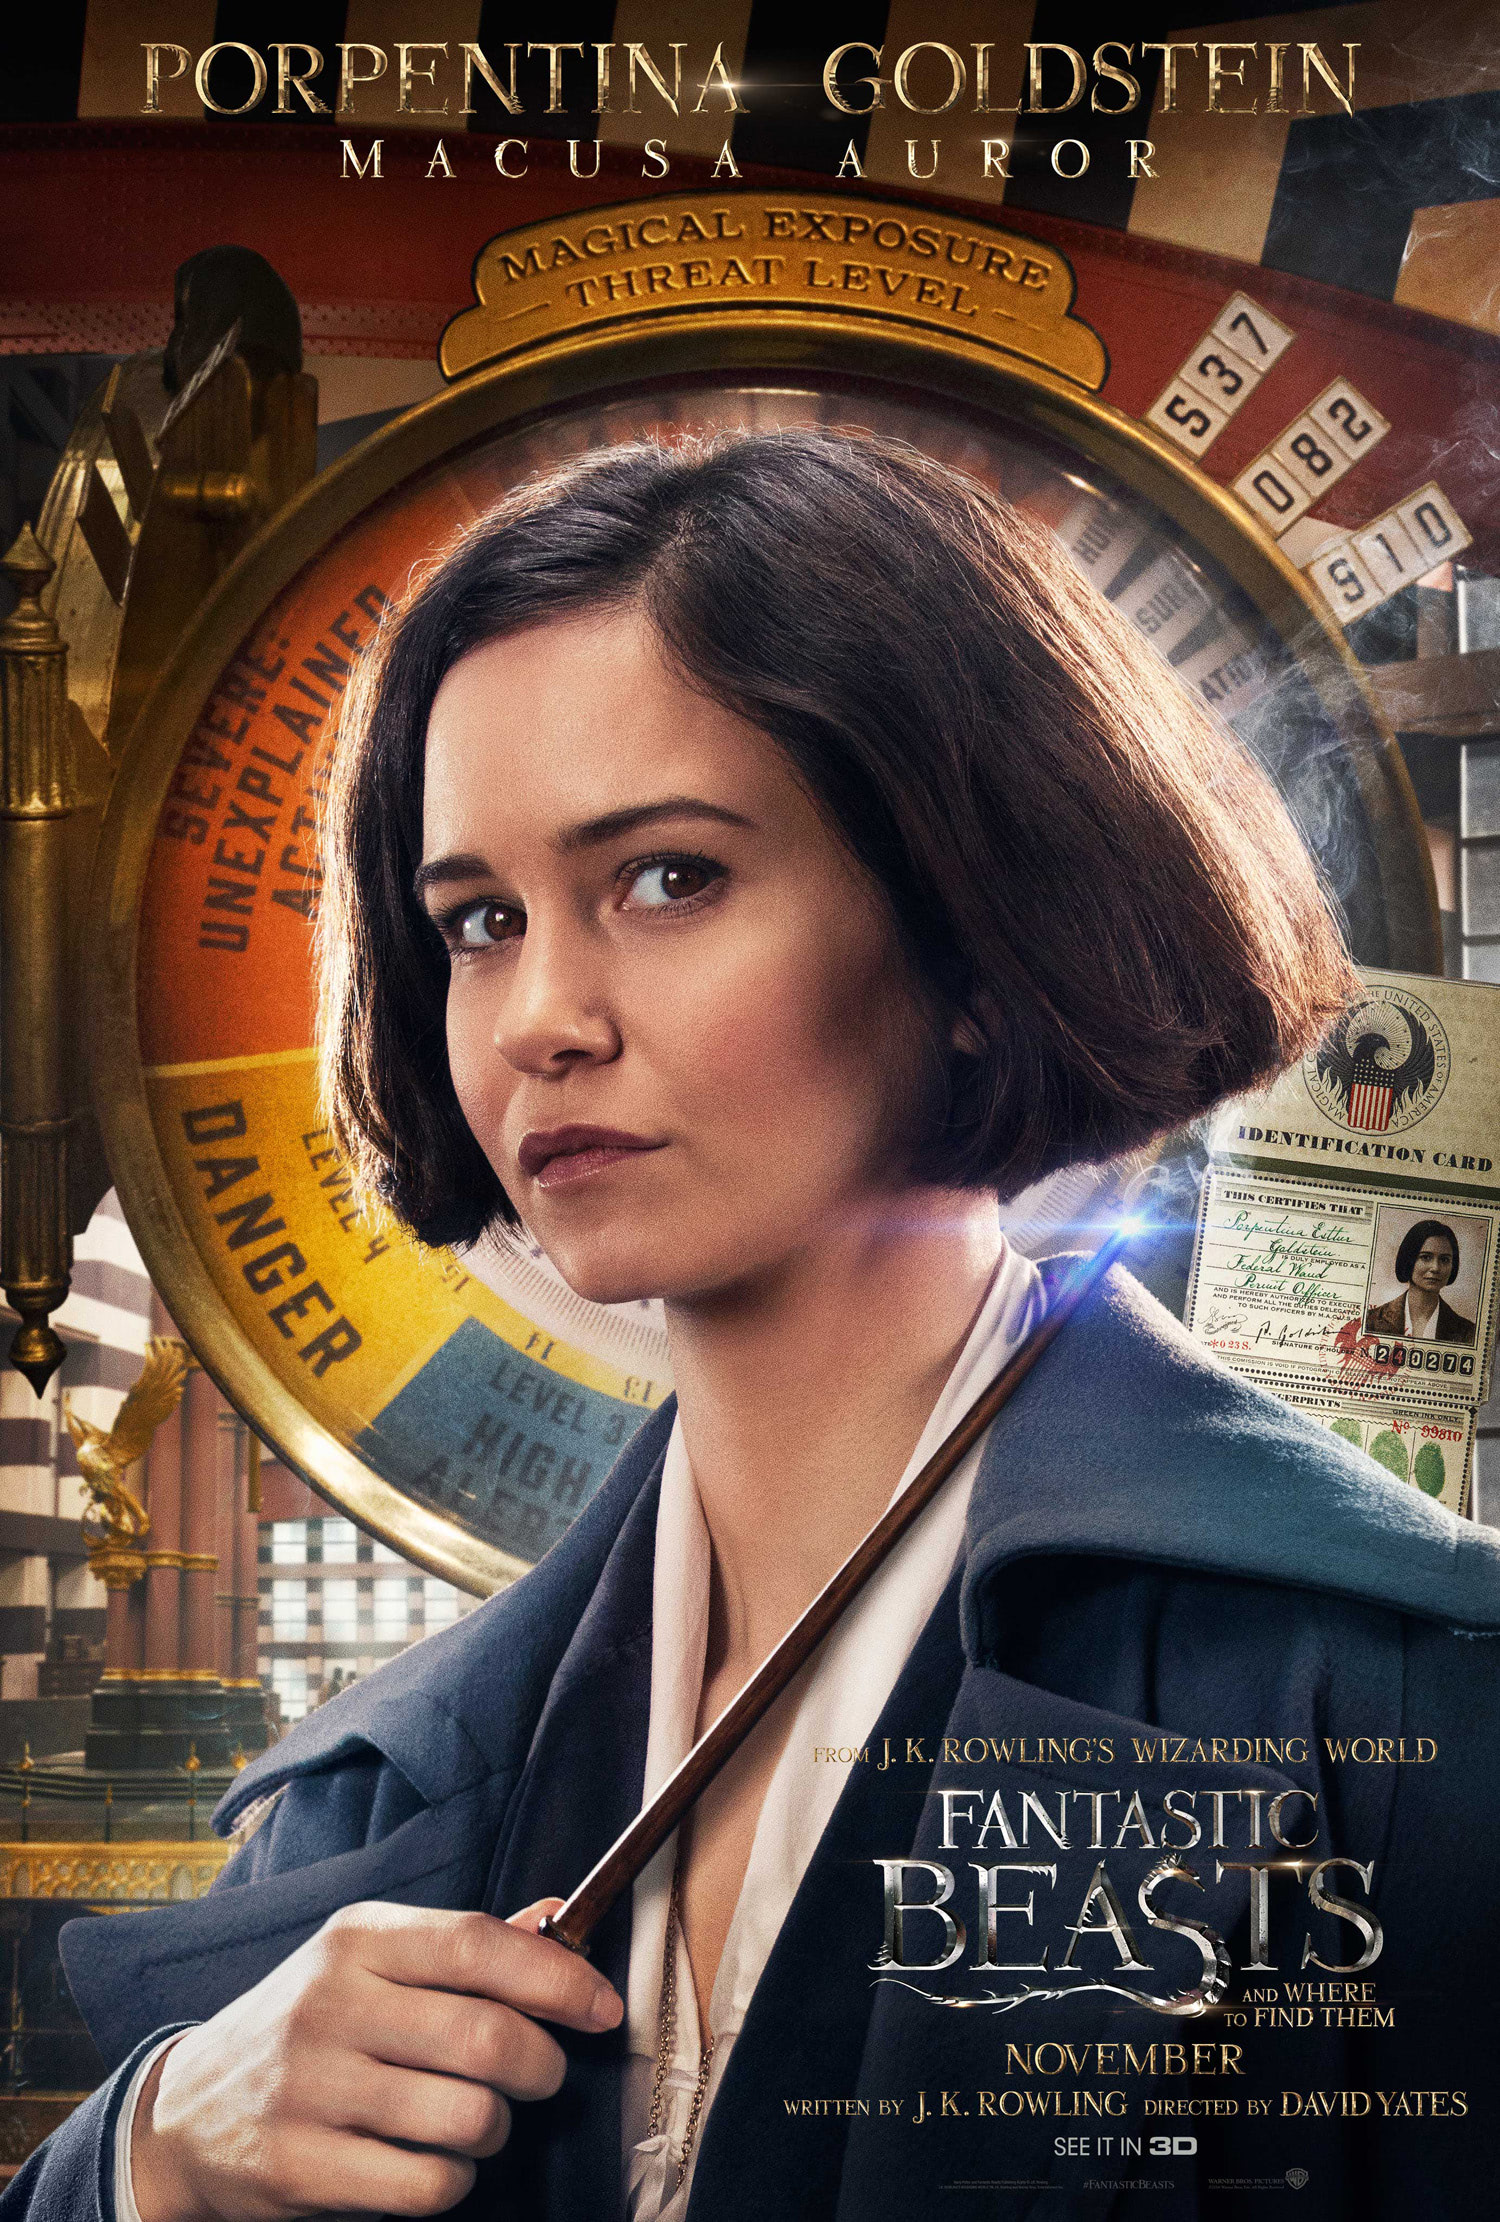 'Fantastic Beasts and Where to Find Them' Tina poster